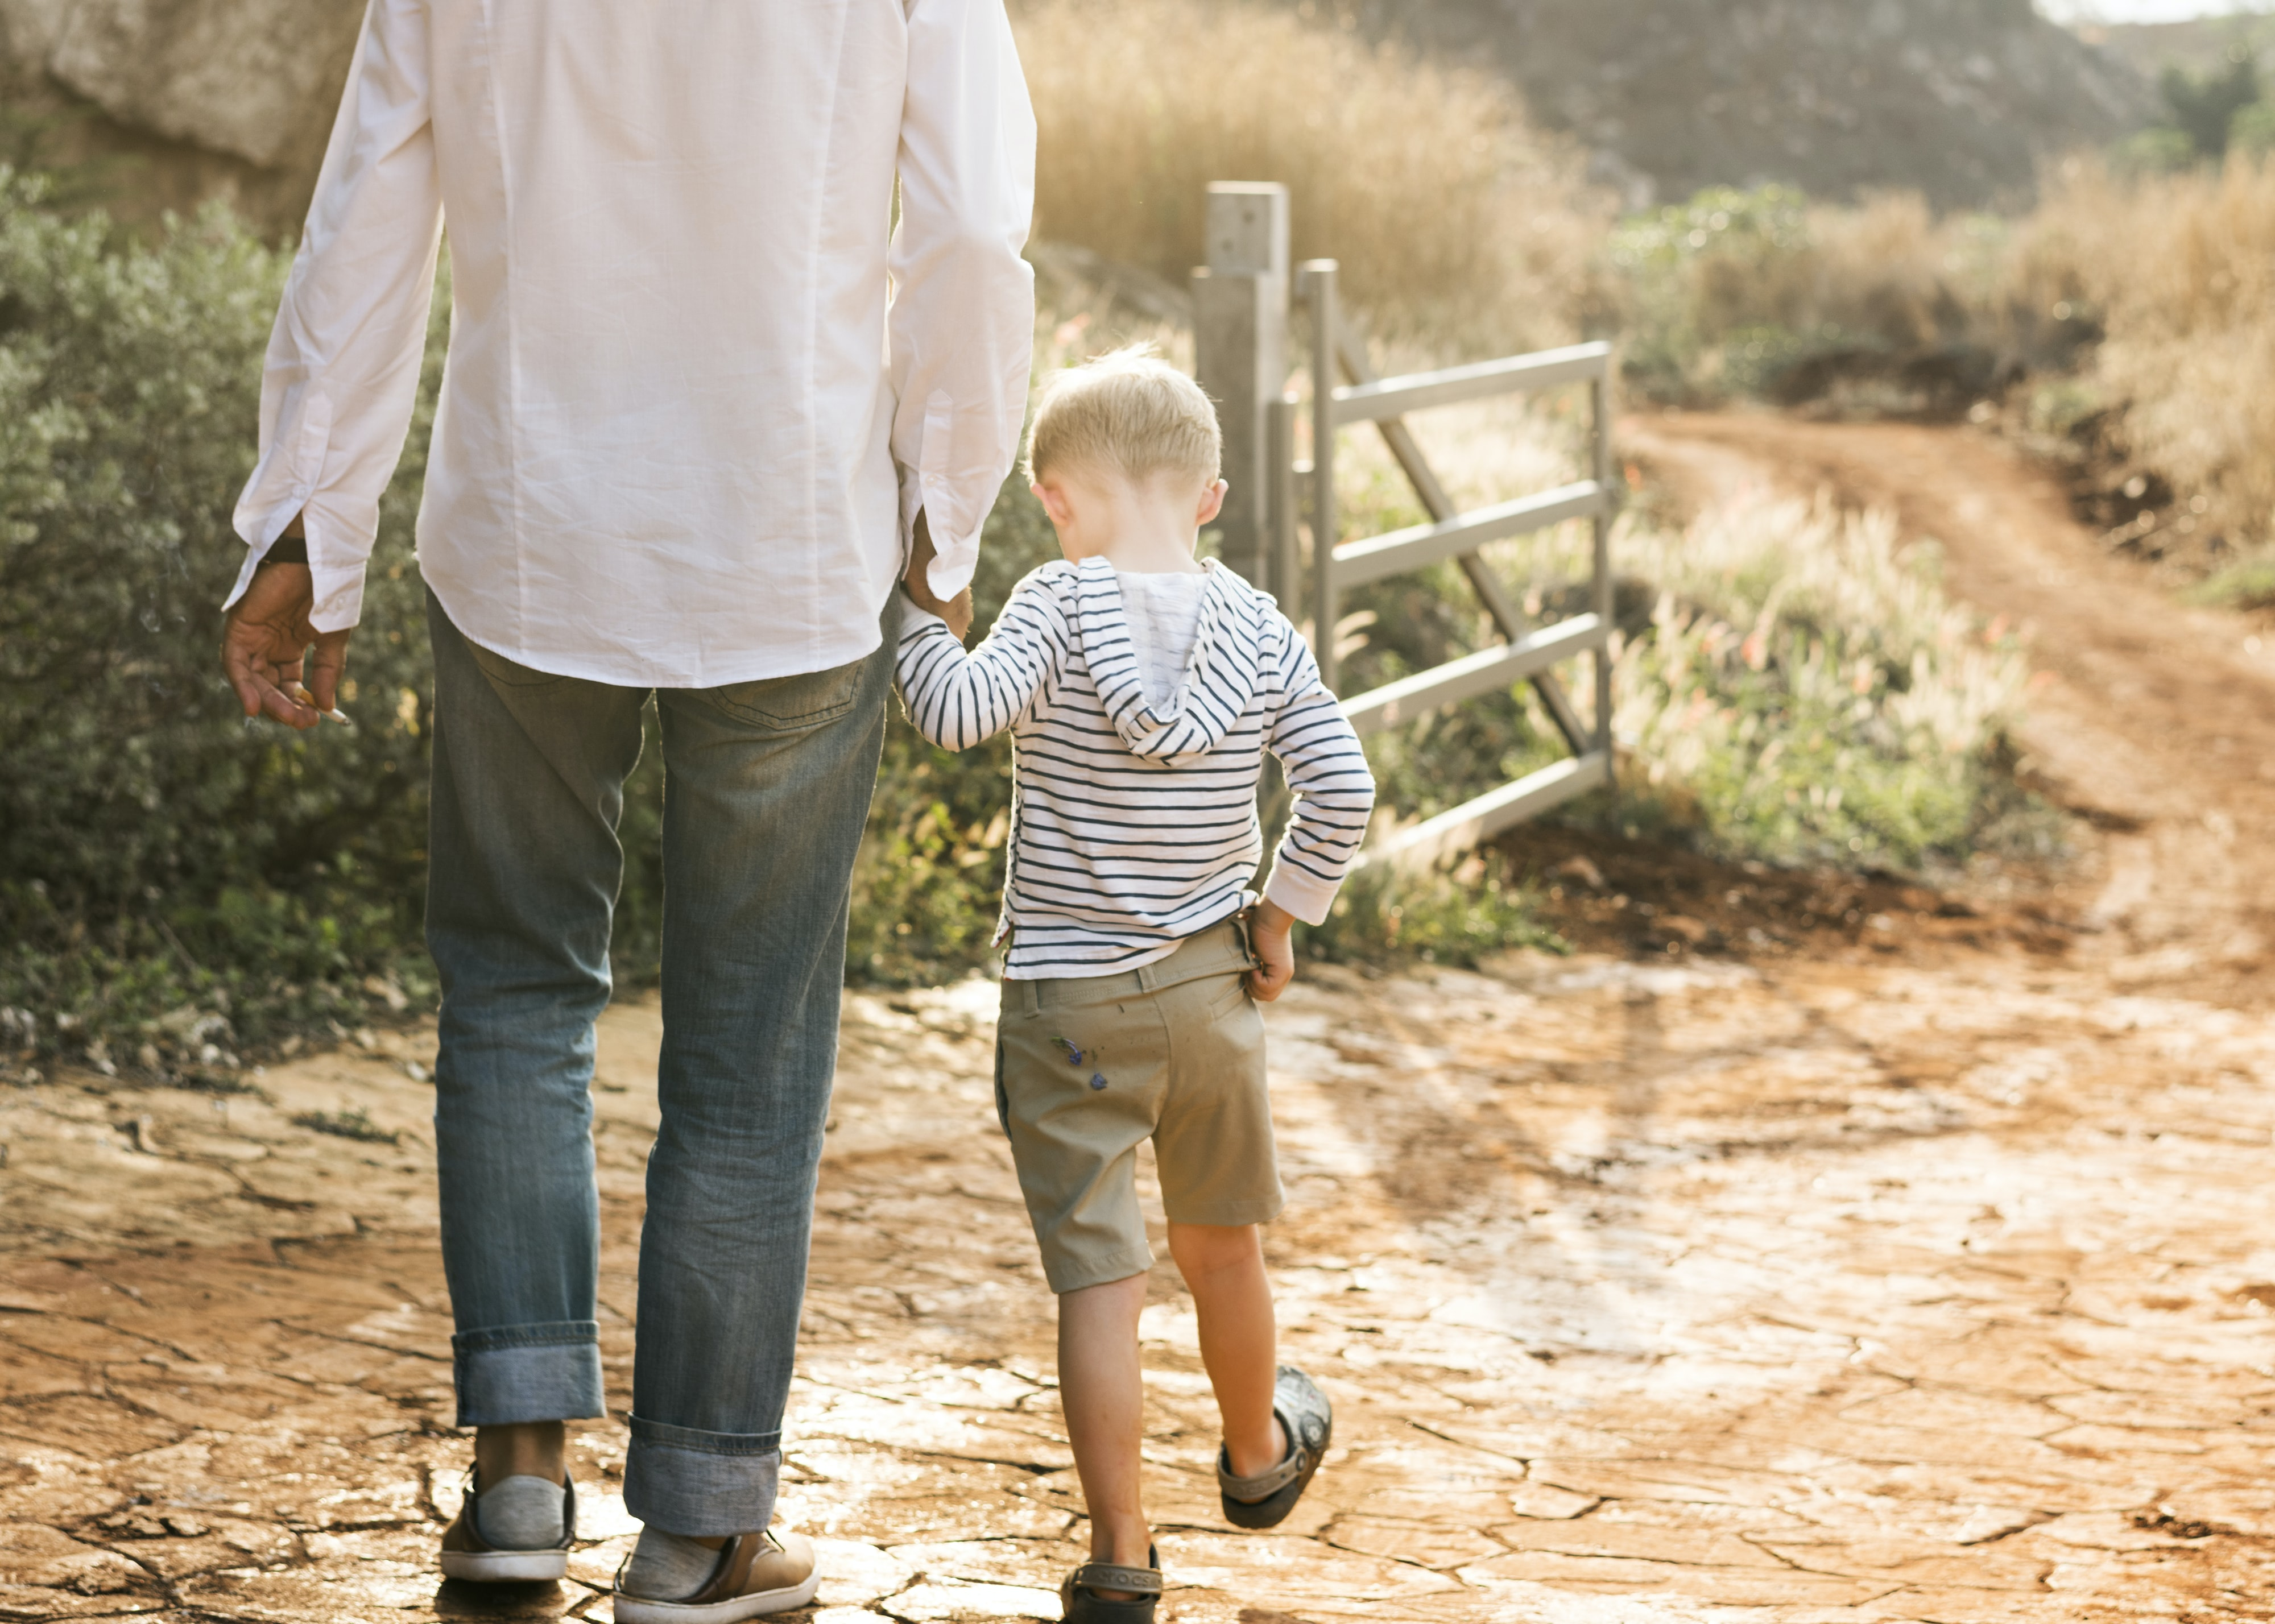 man holding hands with boy while walking during daytime